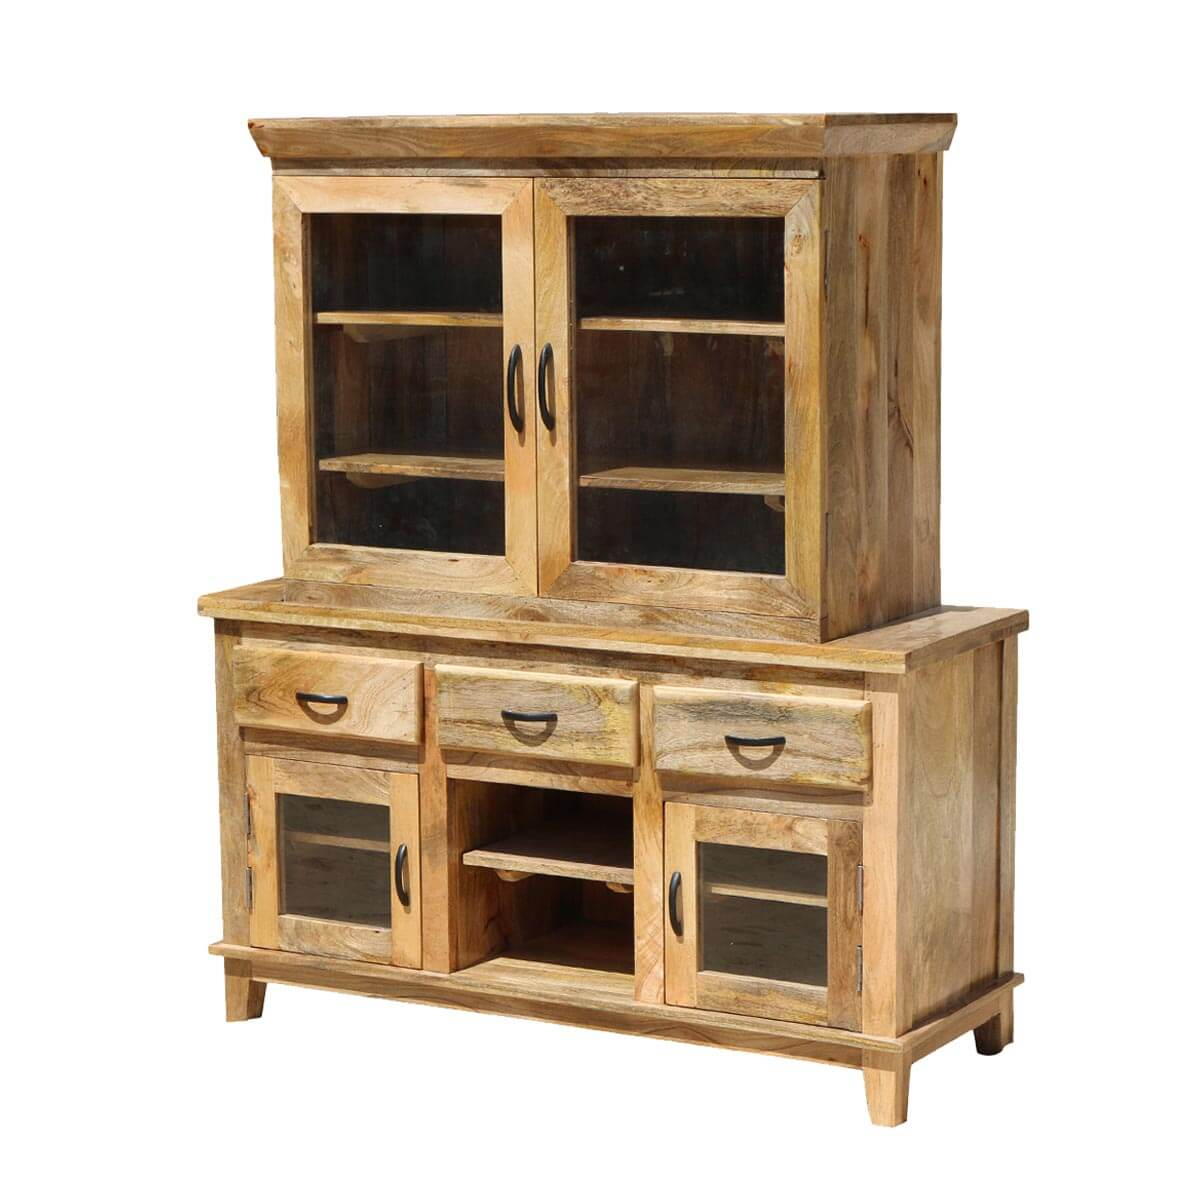 Aflon Rustic Mango Wood Glass Door Dining Sideboard with Hutch